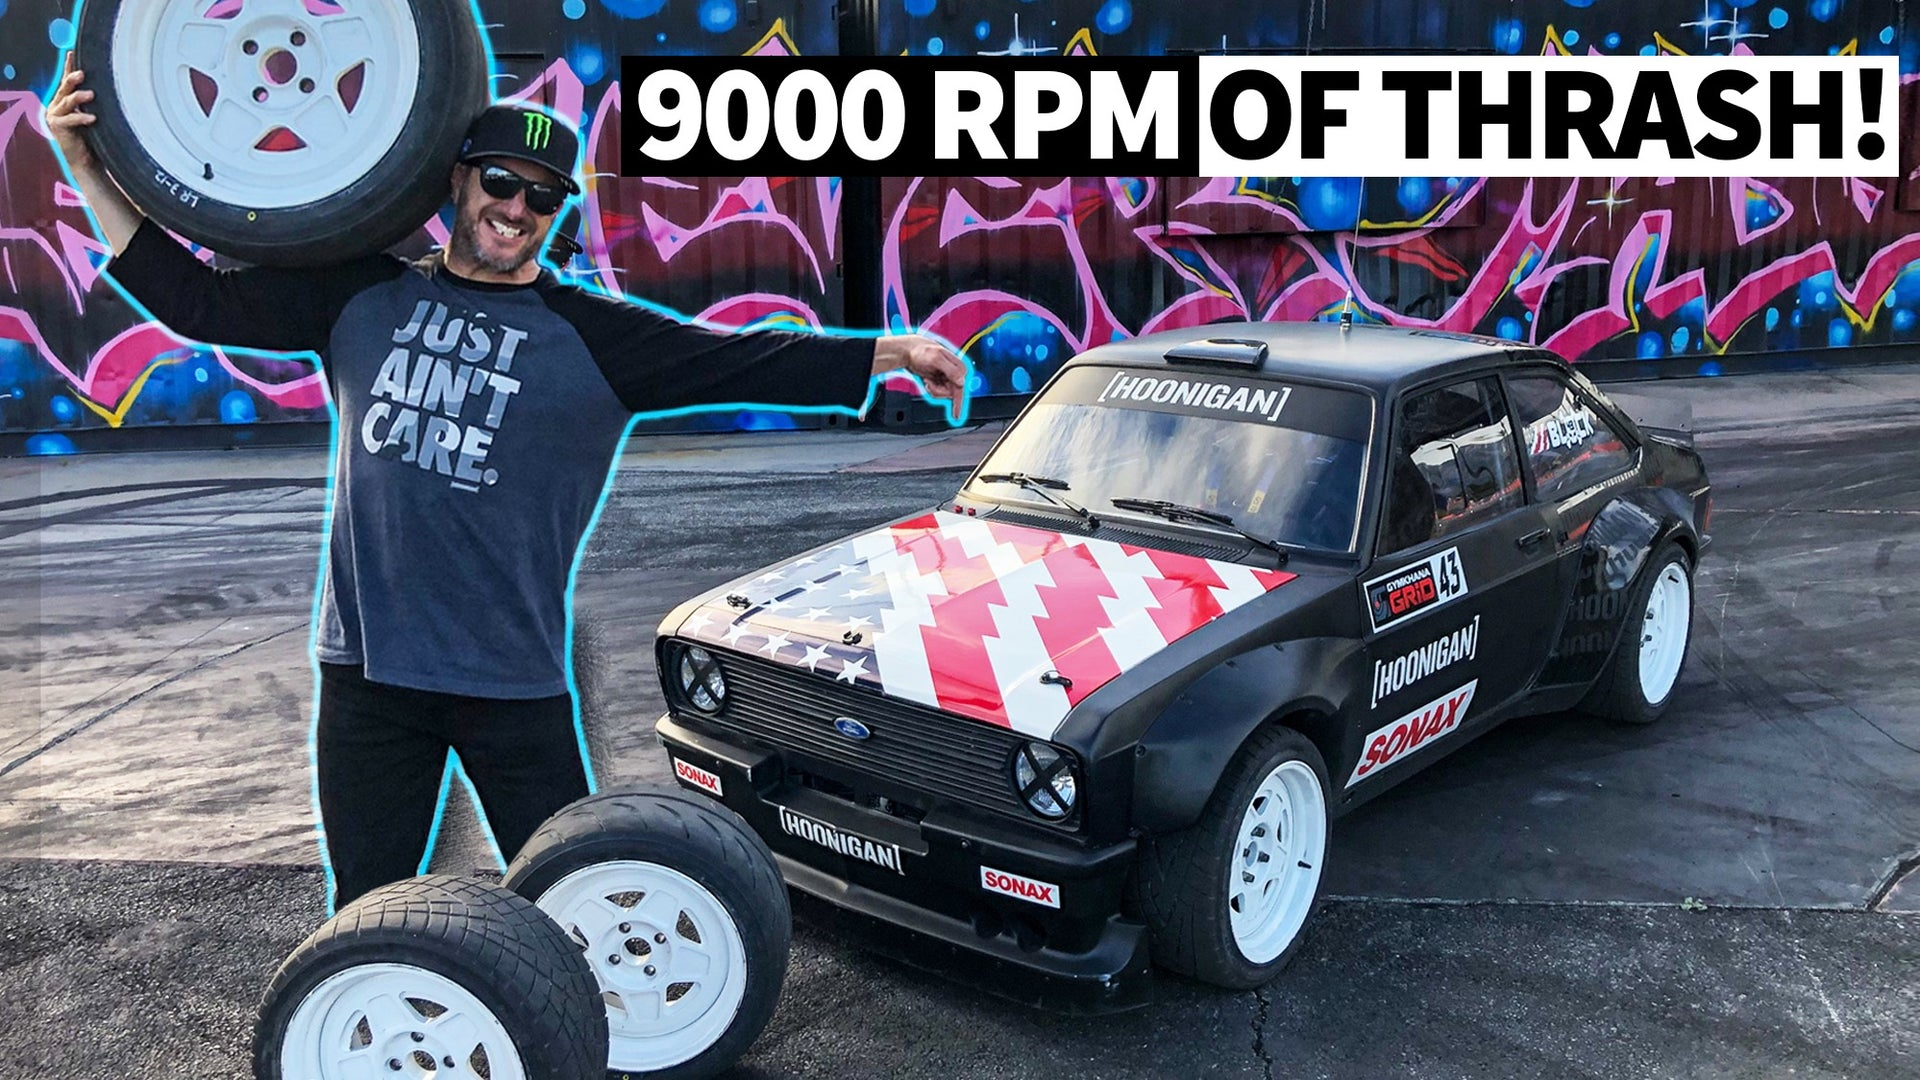 Ken Block Shreds Toyo Tires at 9000 RPM at the Burnyard! Gymkhana GRID Tire Test in Ford Escort Mk2